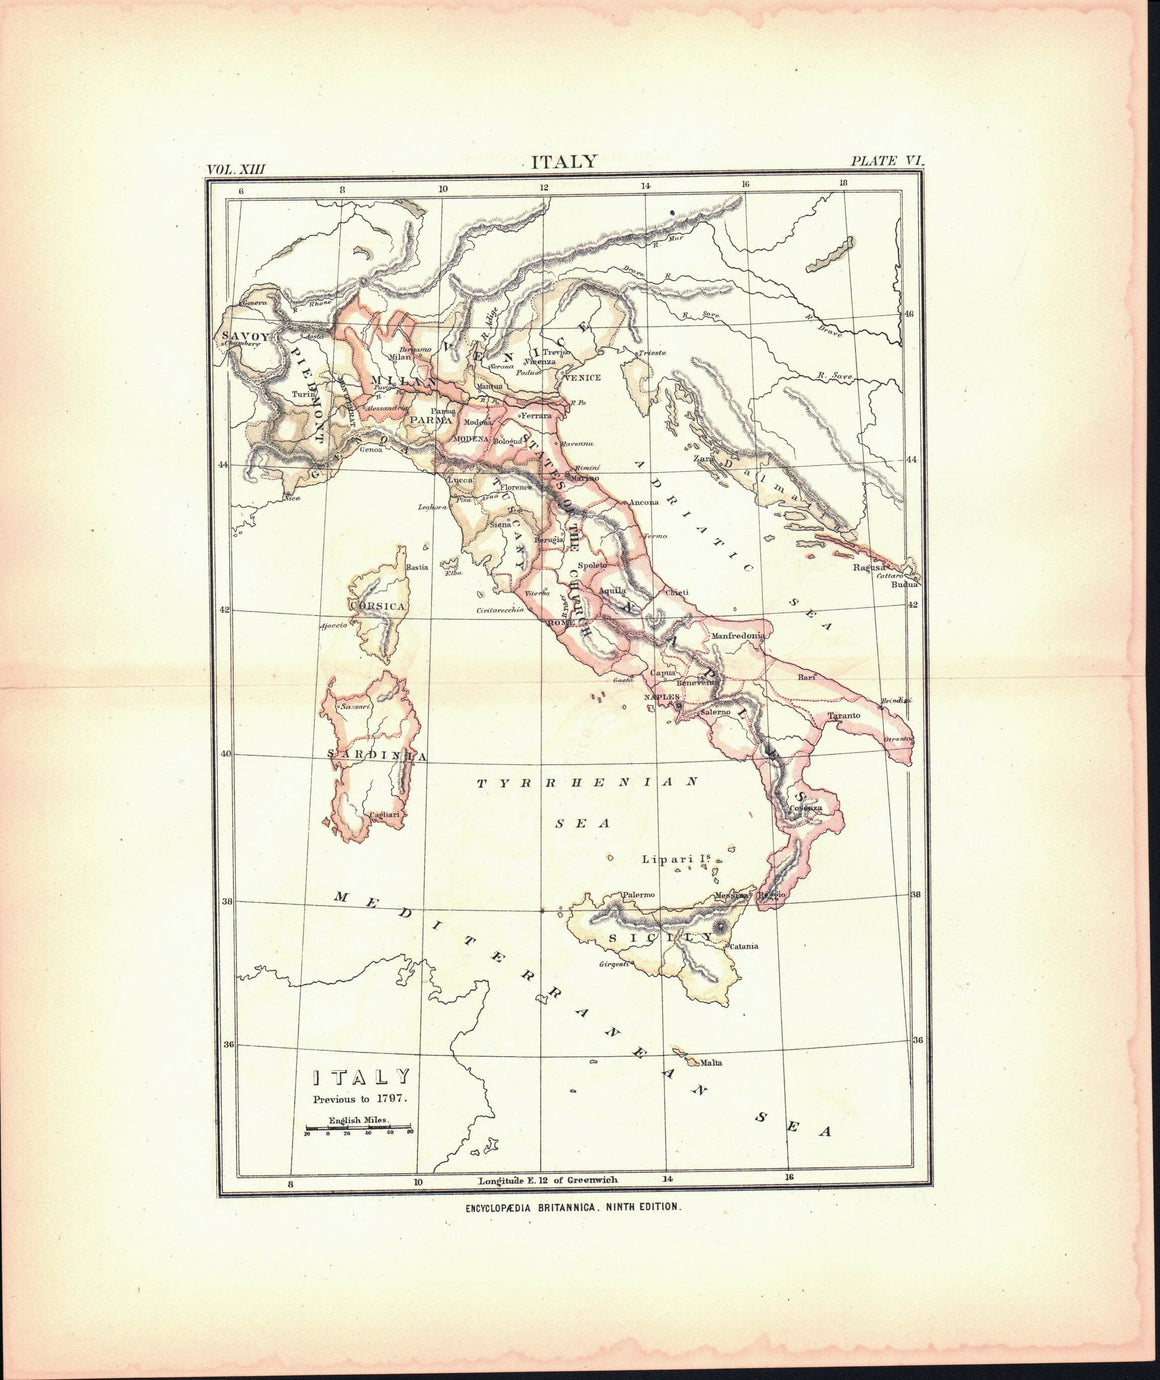 1881 Italy Previous to 1797 - Britannica